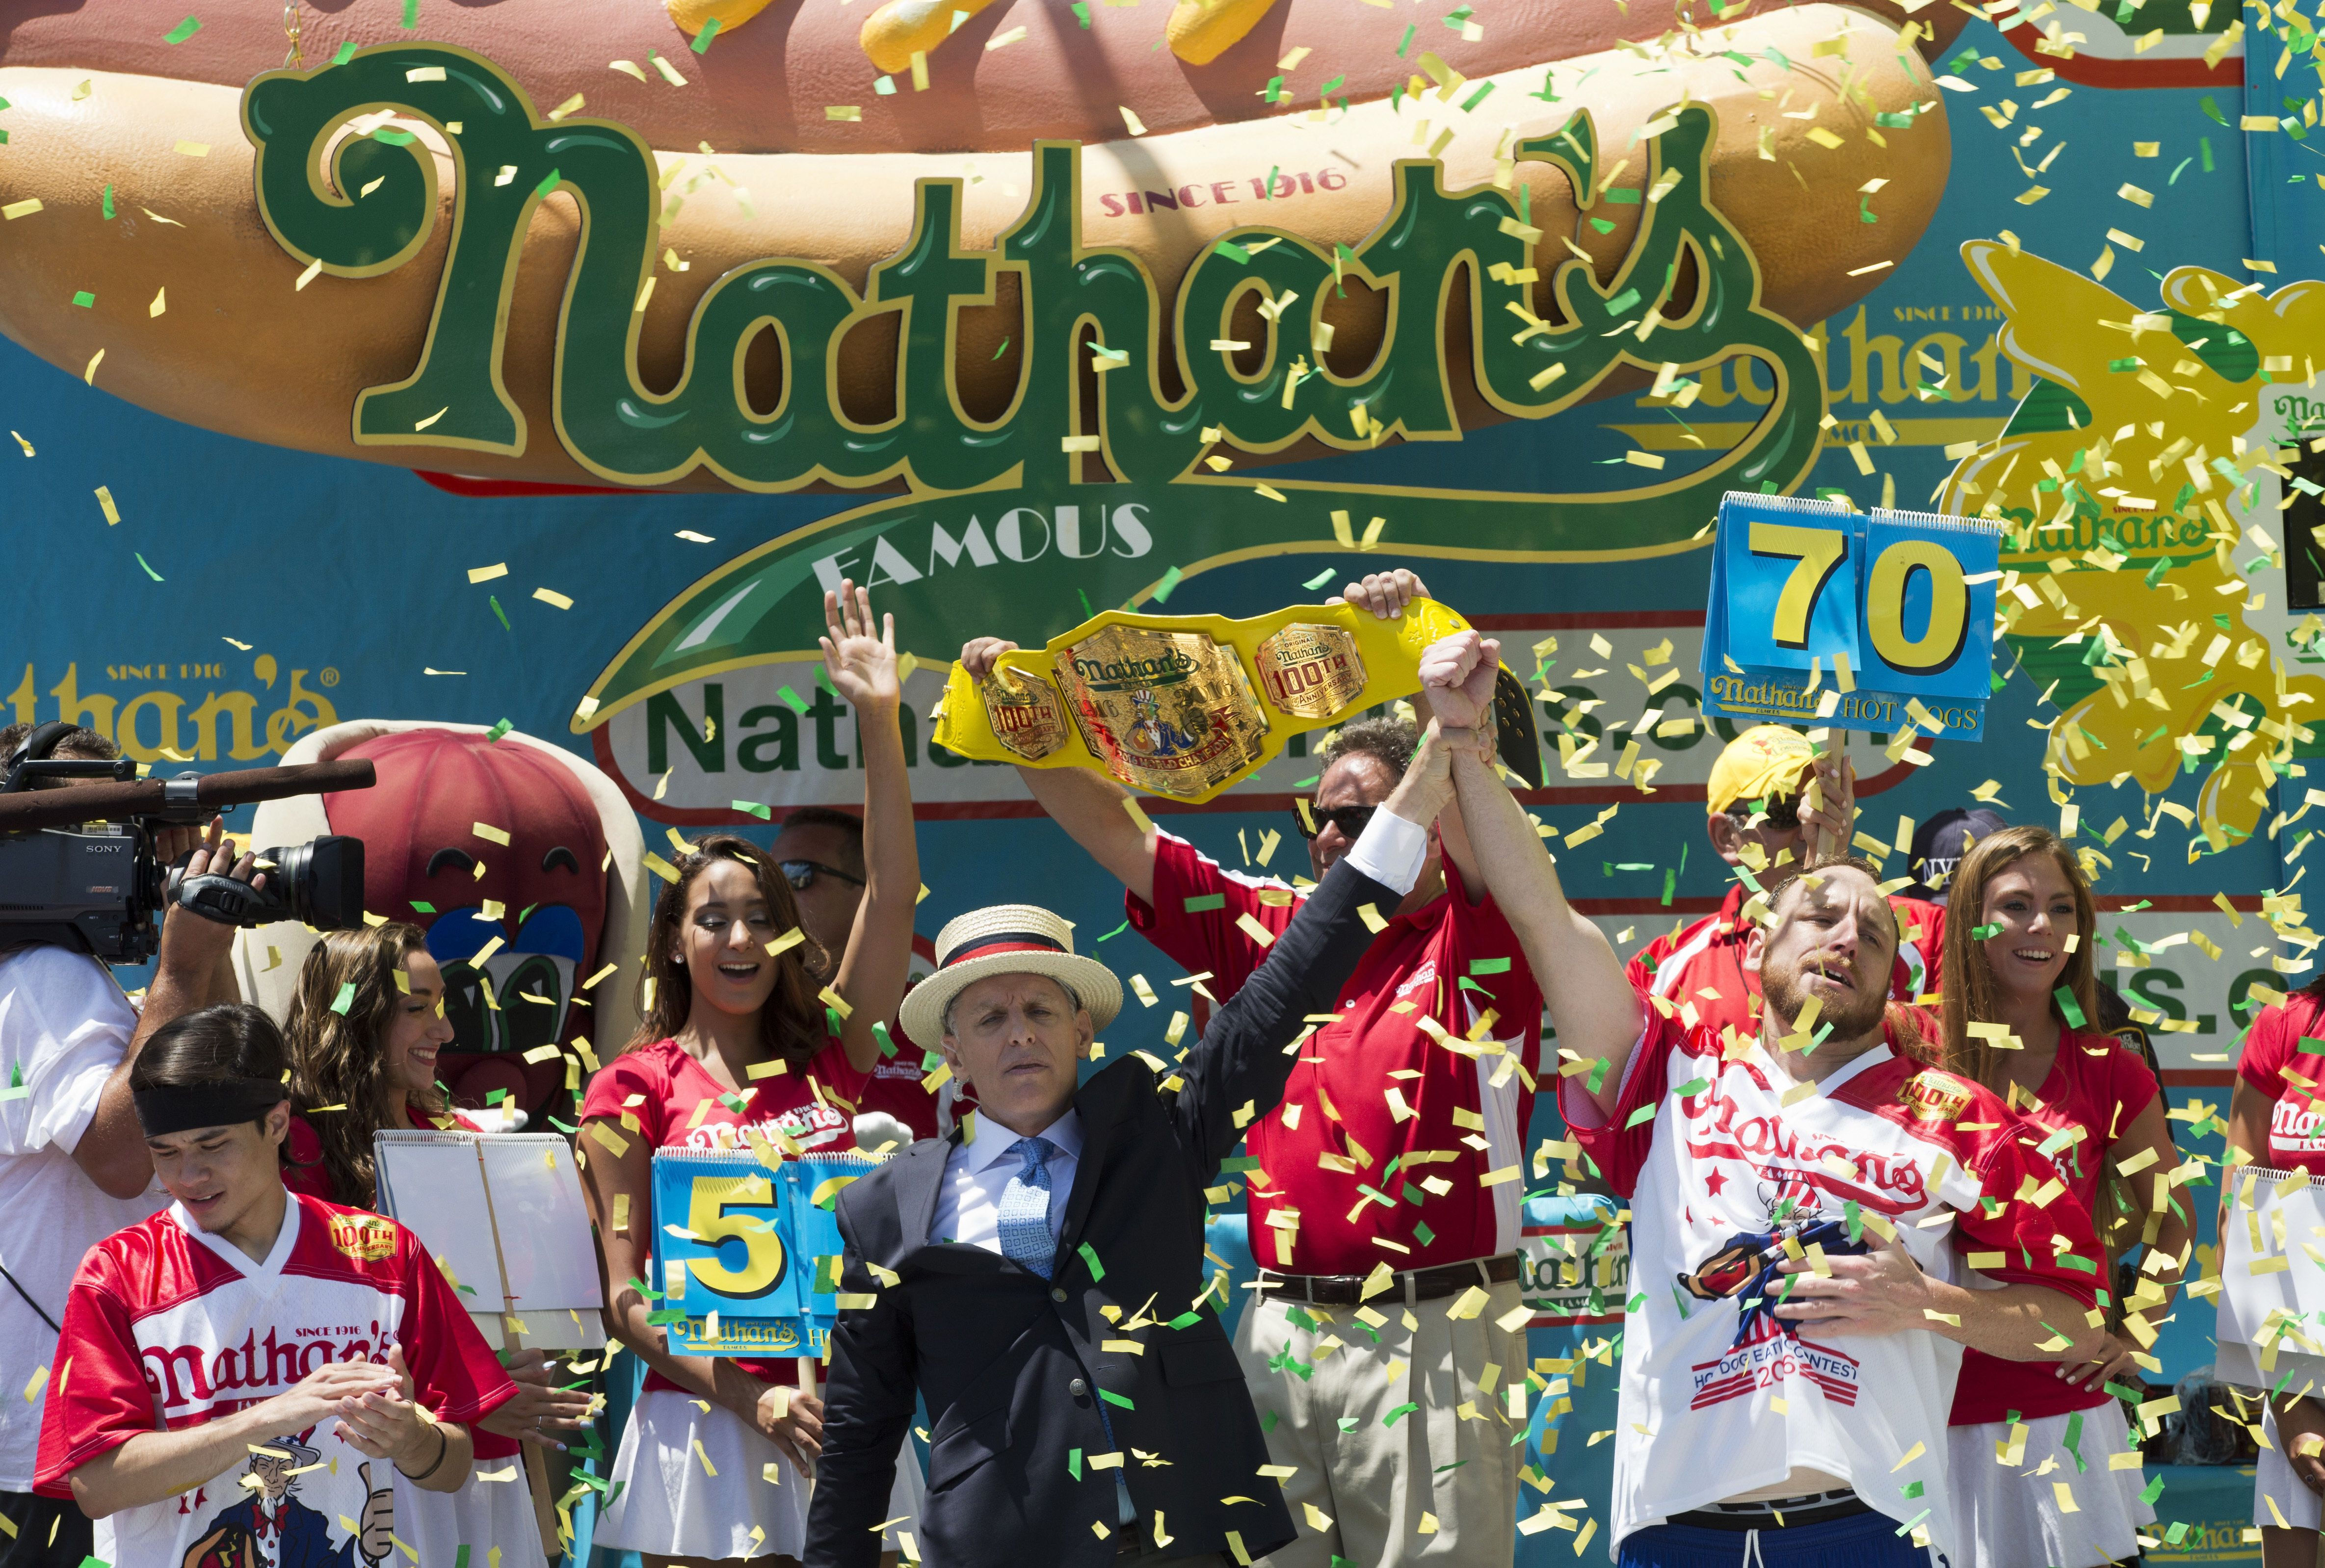 Joey Chestnut, right, is declared Nathan's Famous Fourth of July International Hot Dog Eating Contest men's competition winner, Monday, July 4, 2016, in New York. Chestnut came in first eating 70 hot dogs and buns in 10 minutes. Matt Stonie came in second eating 53 hot dogs and buns in 10 minutes. (AP Photo/Mary Altaffer)